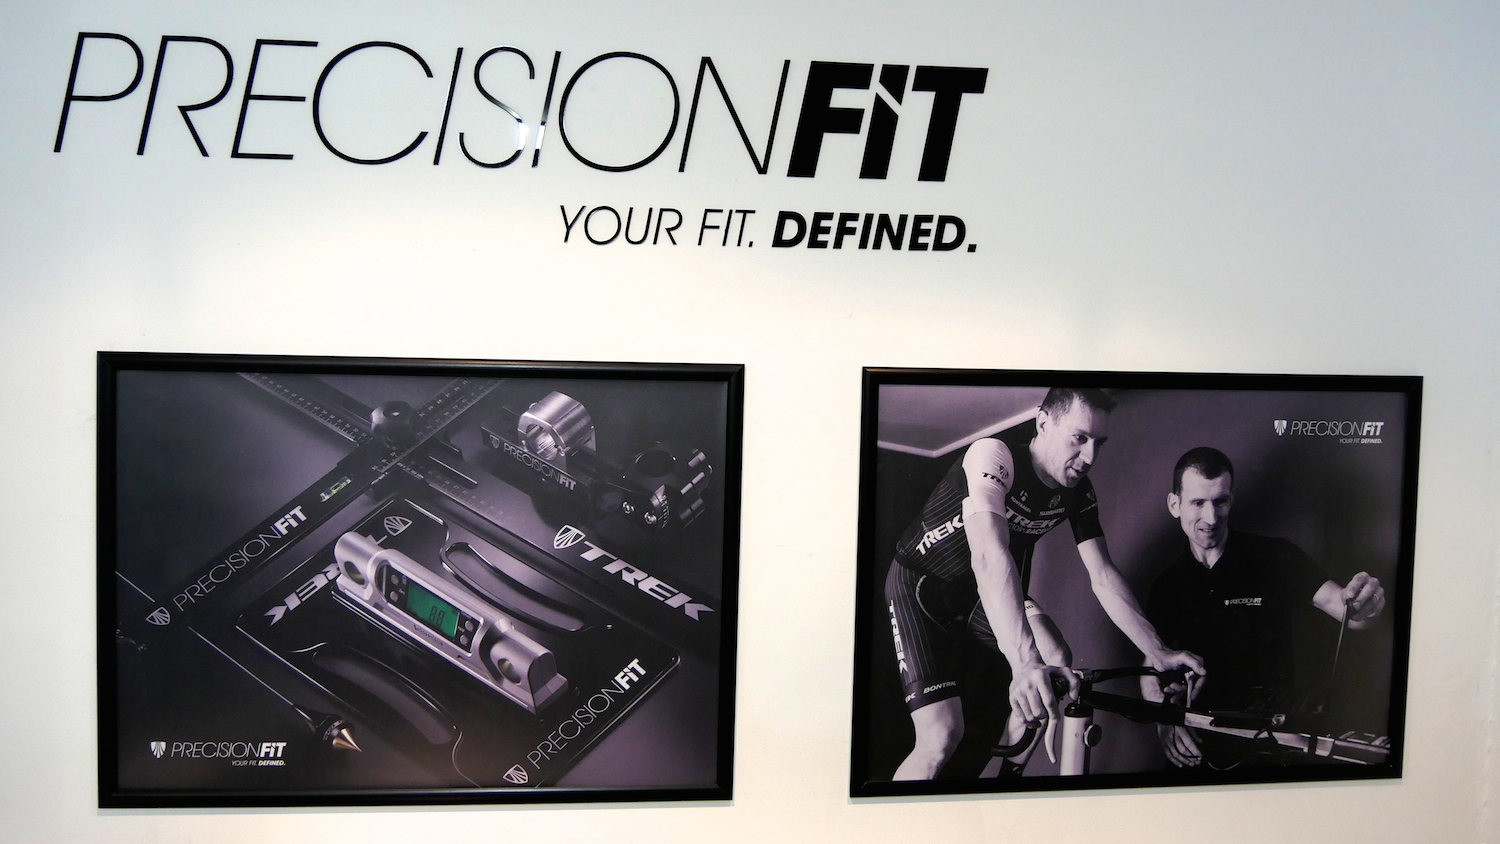 Trek Precision Fit Posters